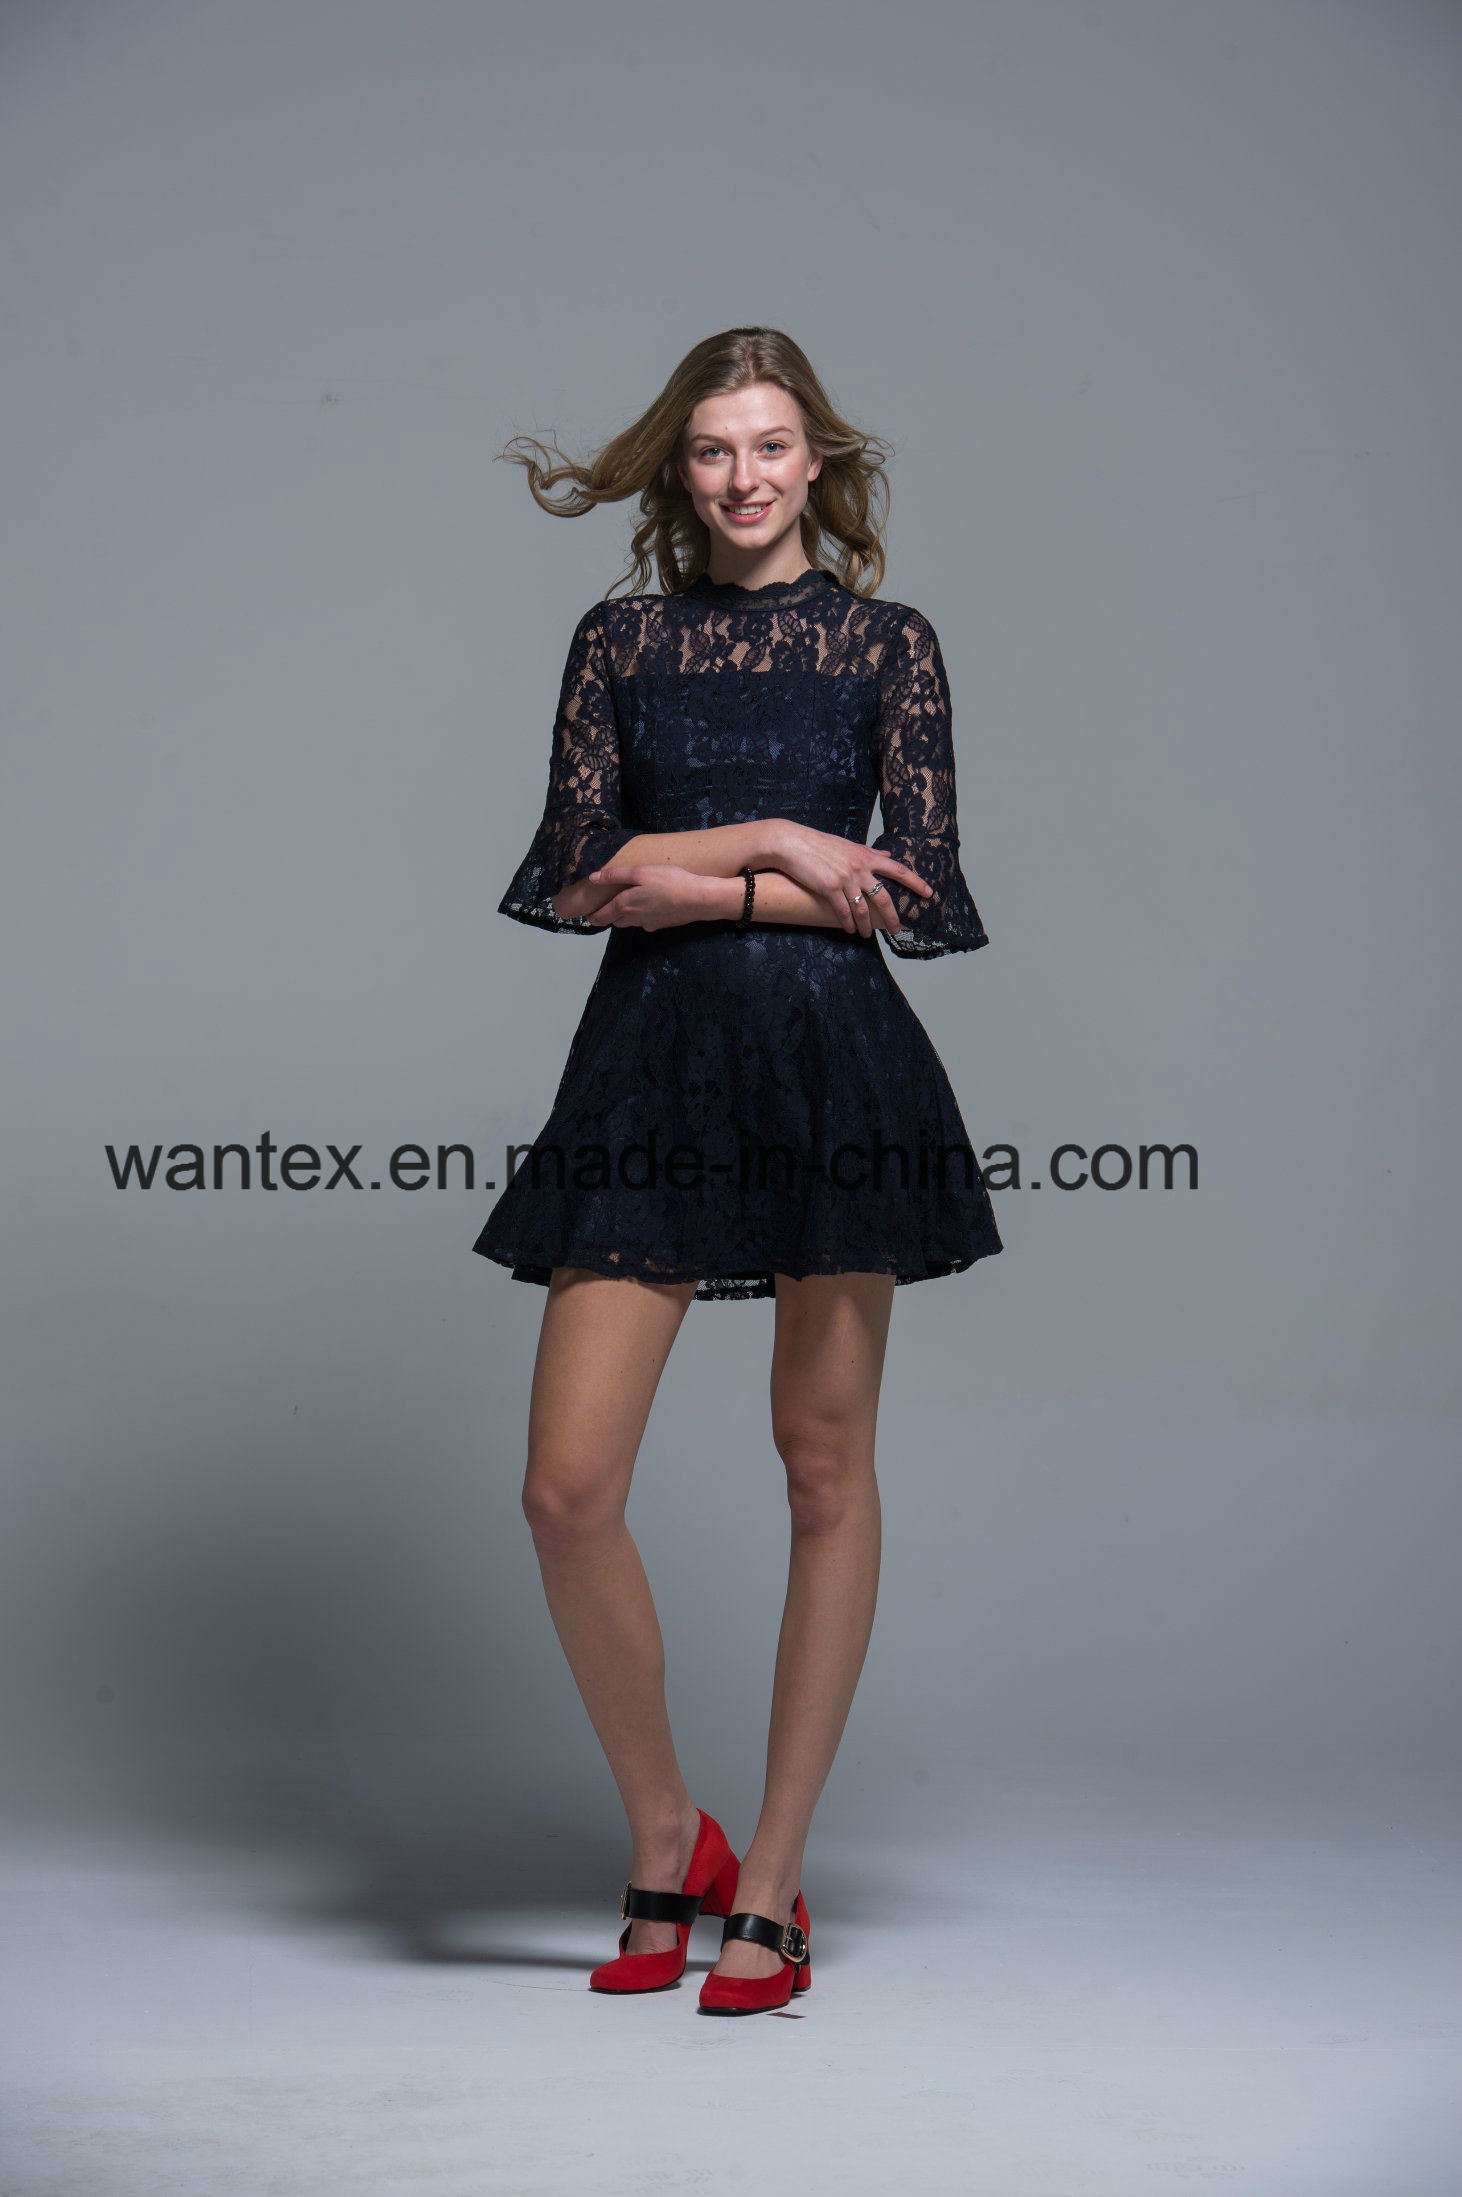 Ladies Lace Dress 100% Cotton Spring Autumn Fashion Hollow Black